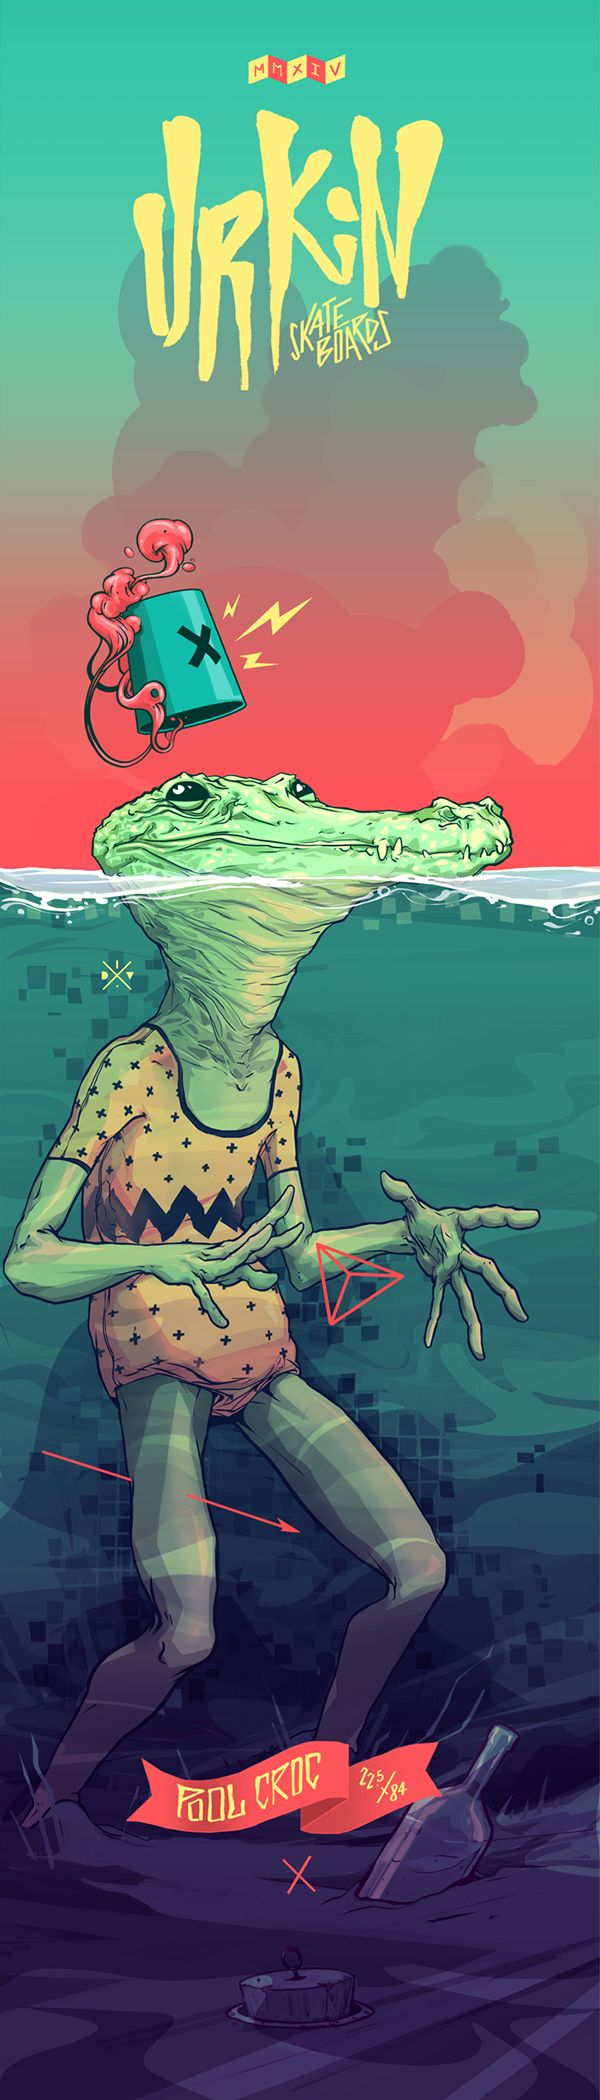 Urkin / Pool Croc by I . D . V ., via Behance